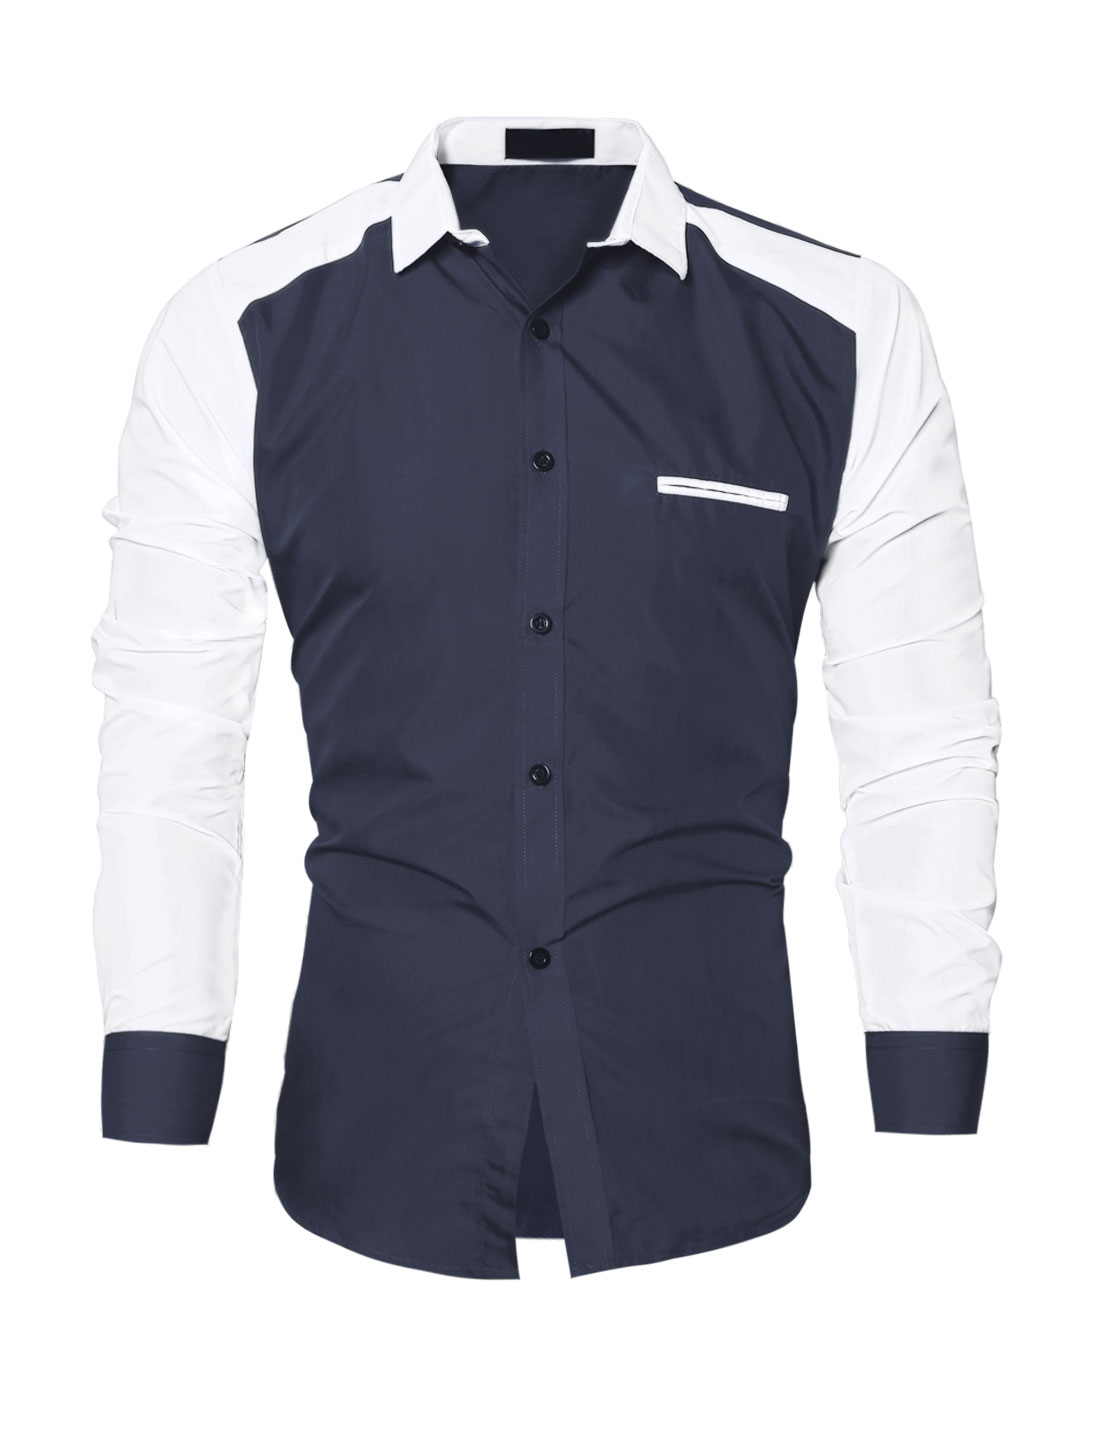 Men Collared Contrast Color Slim Fit Shirt Blue M